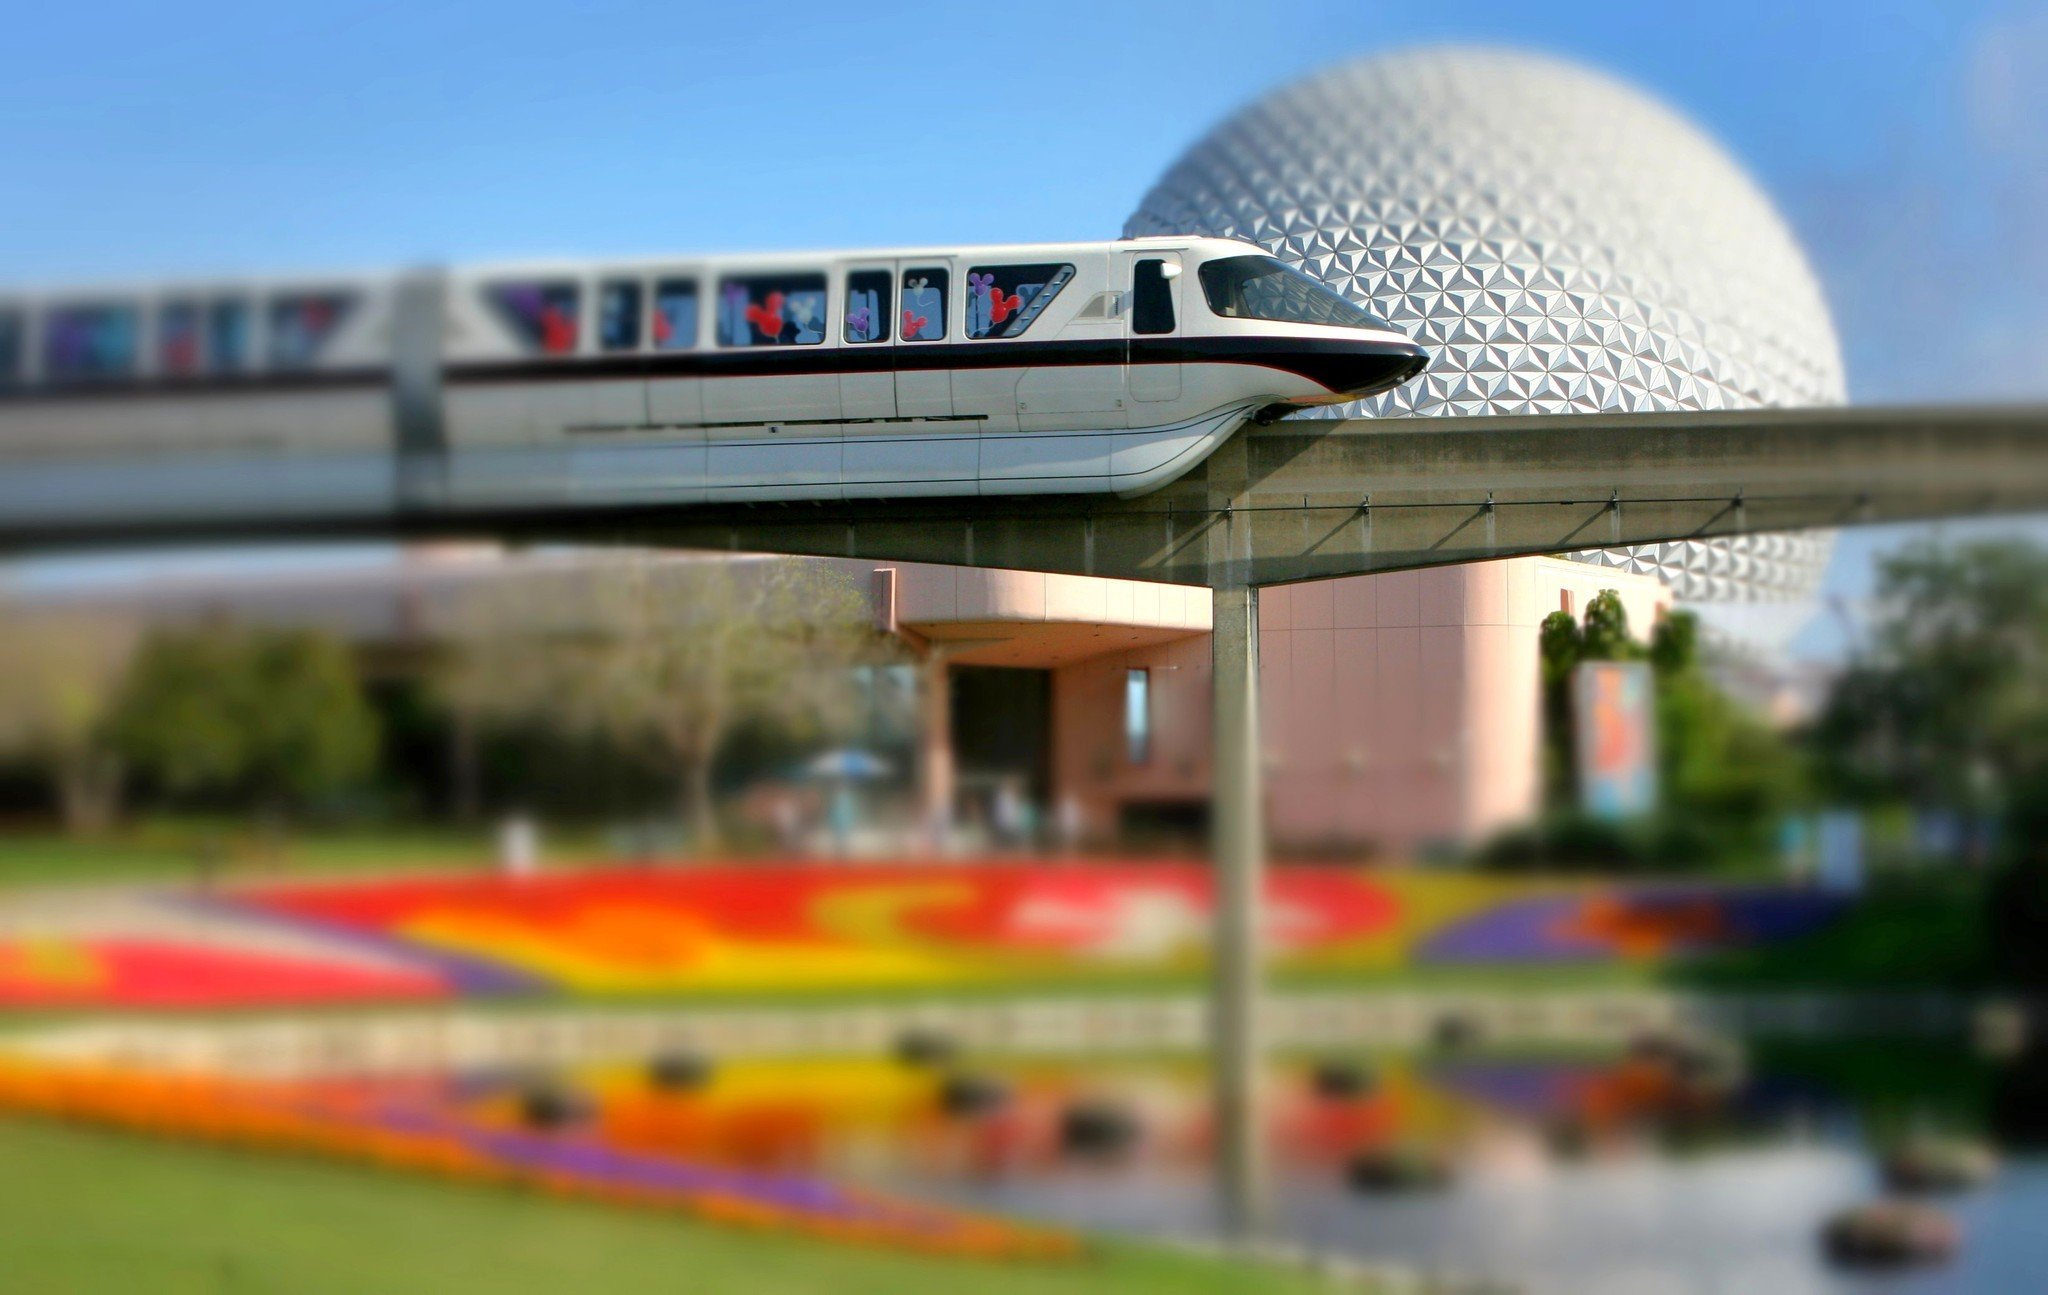 Pictures: It's a Very Small World, after all - Orlando Sentinel